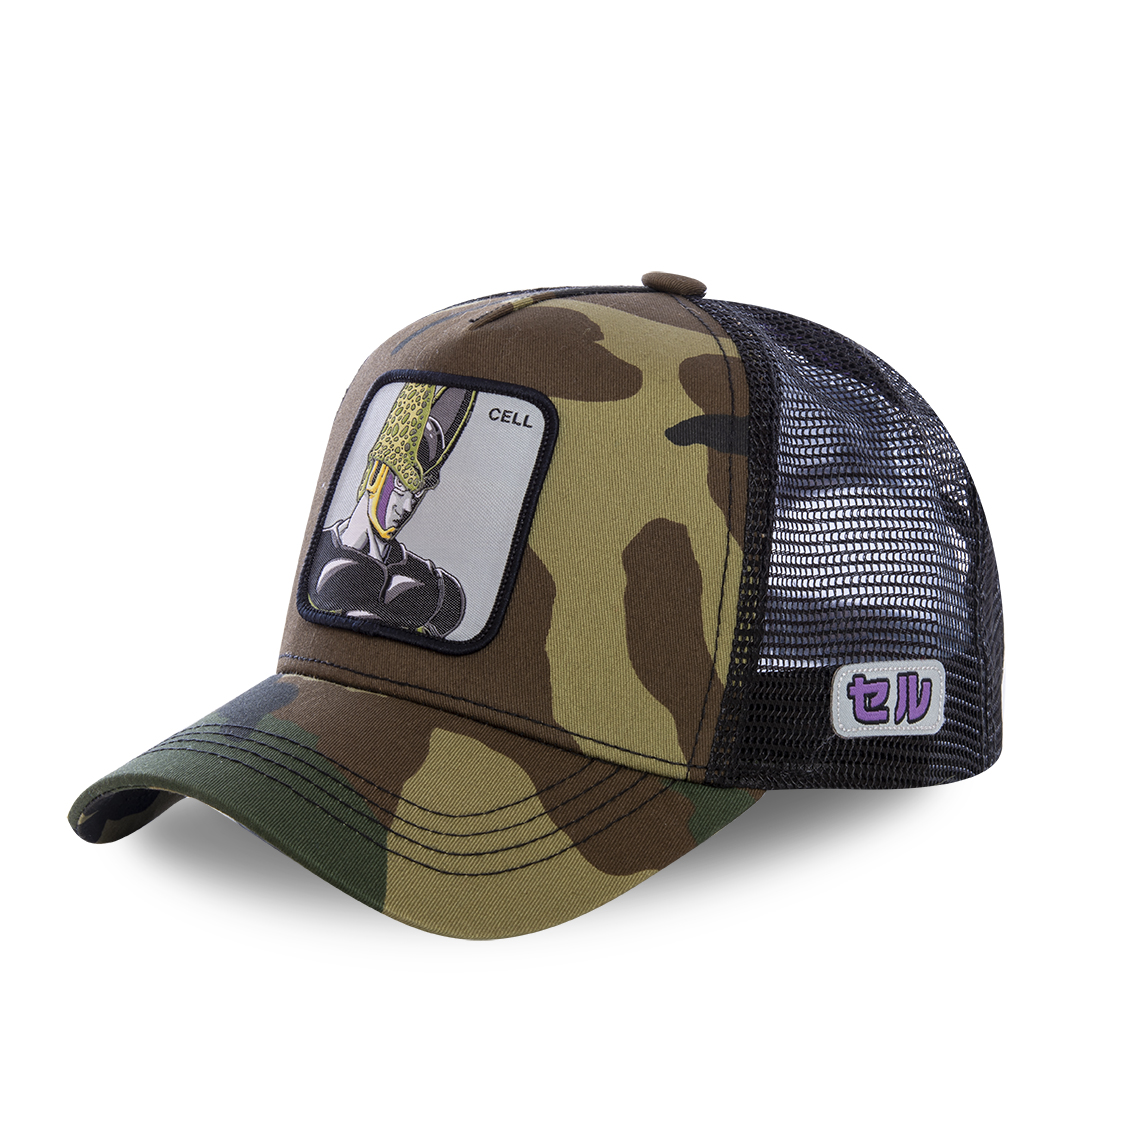 Casquette capslab dragon ball z cell camouflage (photo)